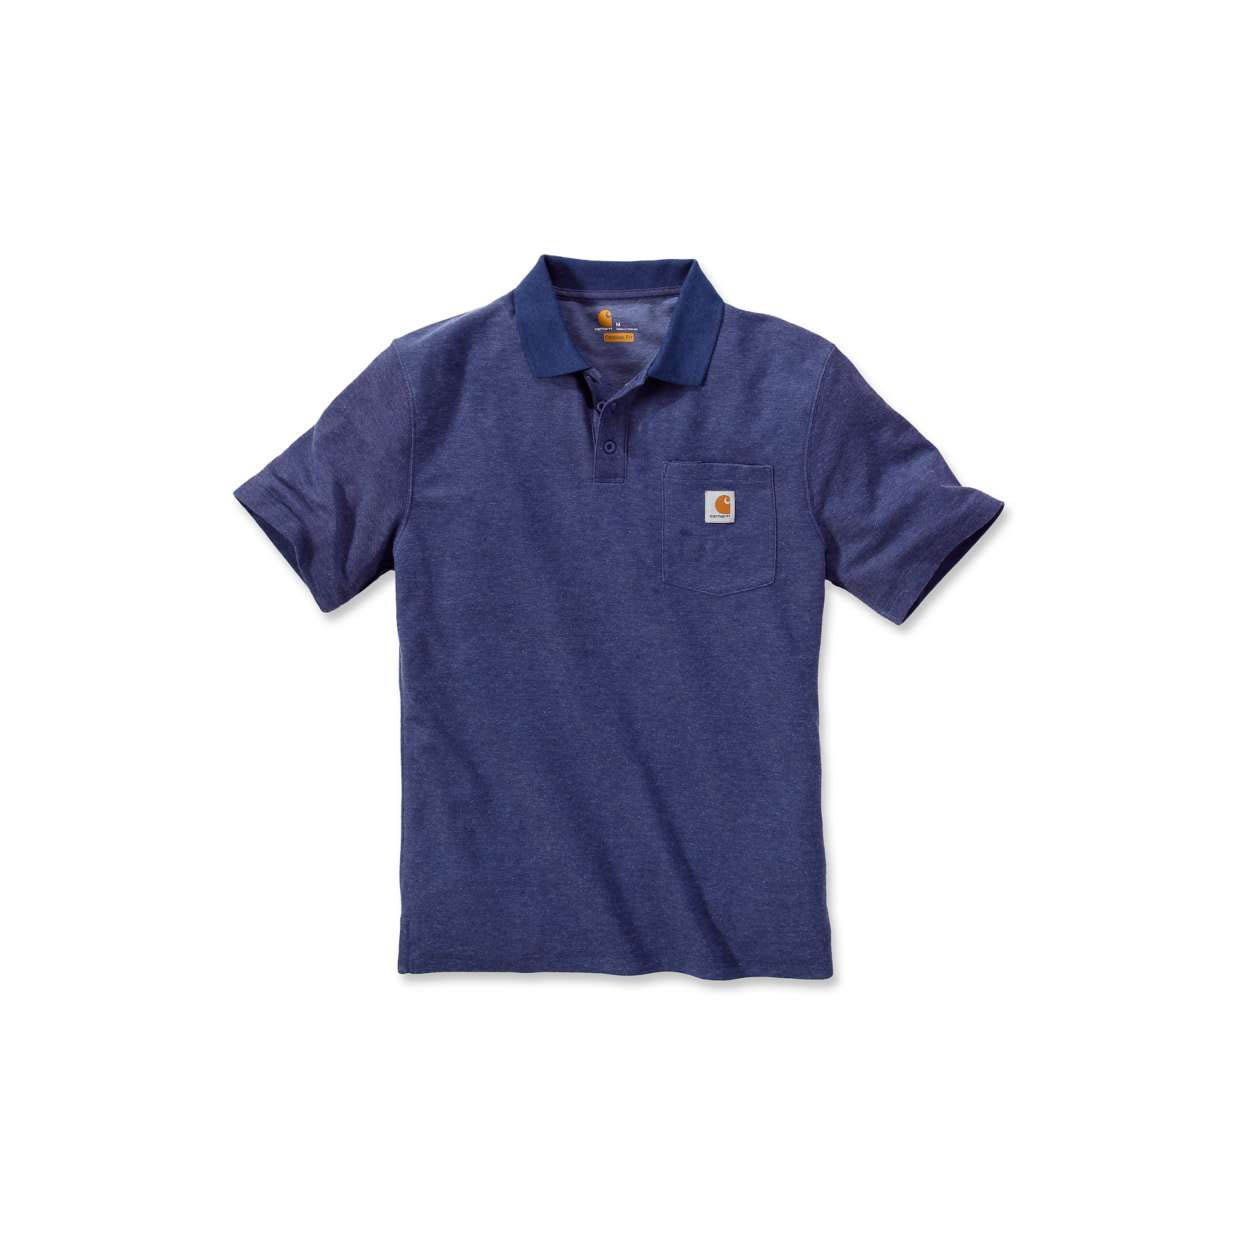 561f4ffb Carhartt K570 Contractor's Work Pocket Polo - Workwear Polo Shirts ...